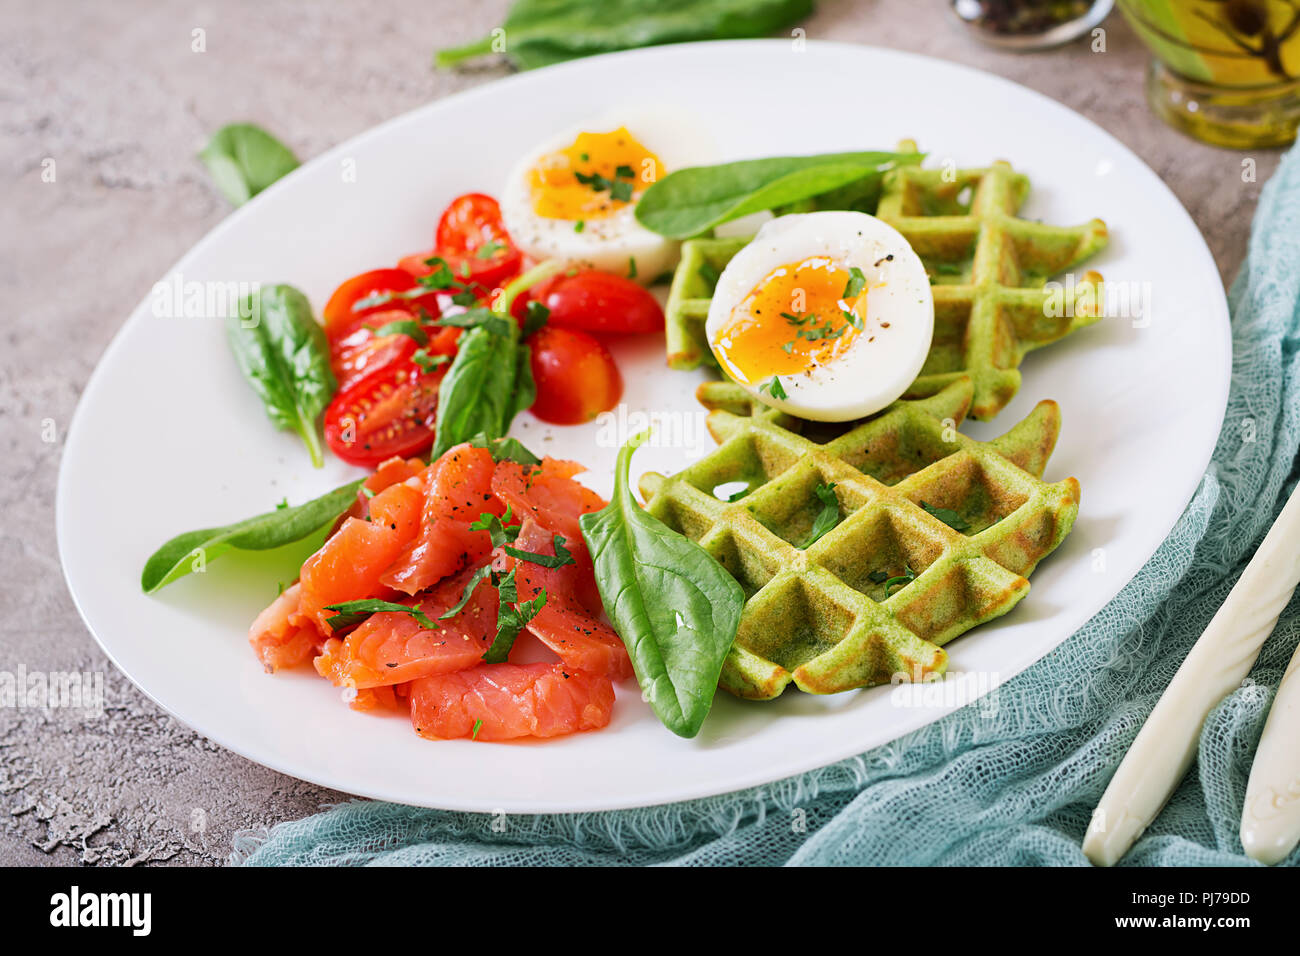 Savory waffles with spinach and egg, tomato, salmon in white plate. Tasty food. - Stock Image